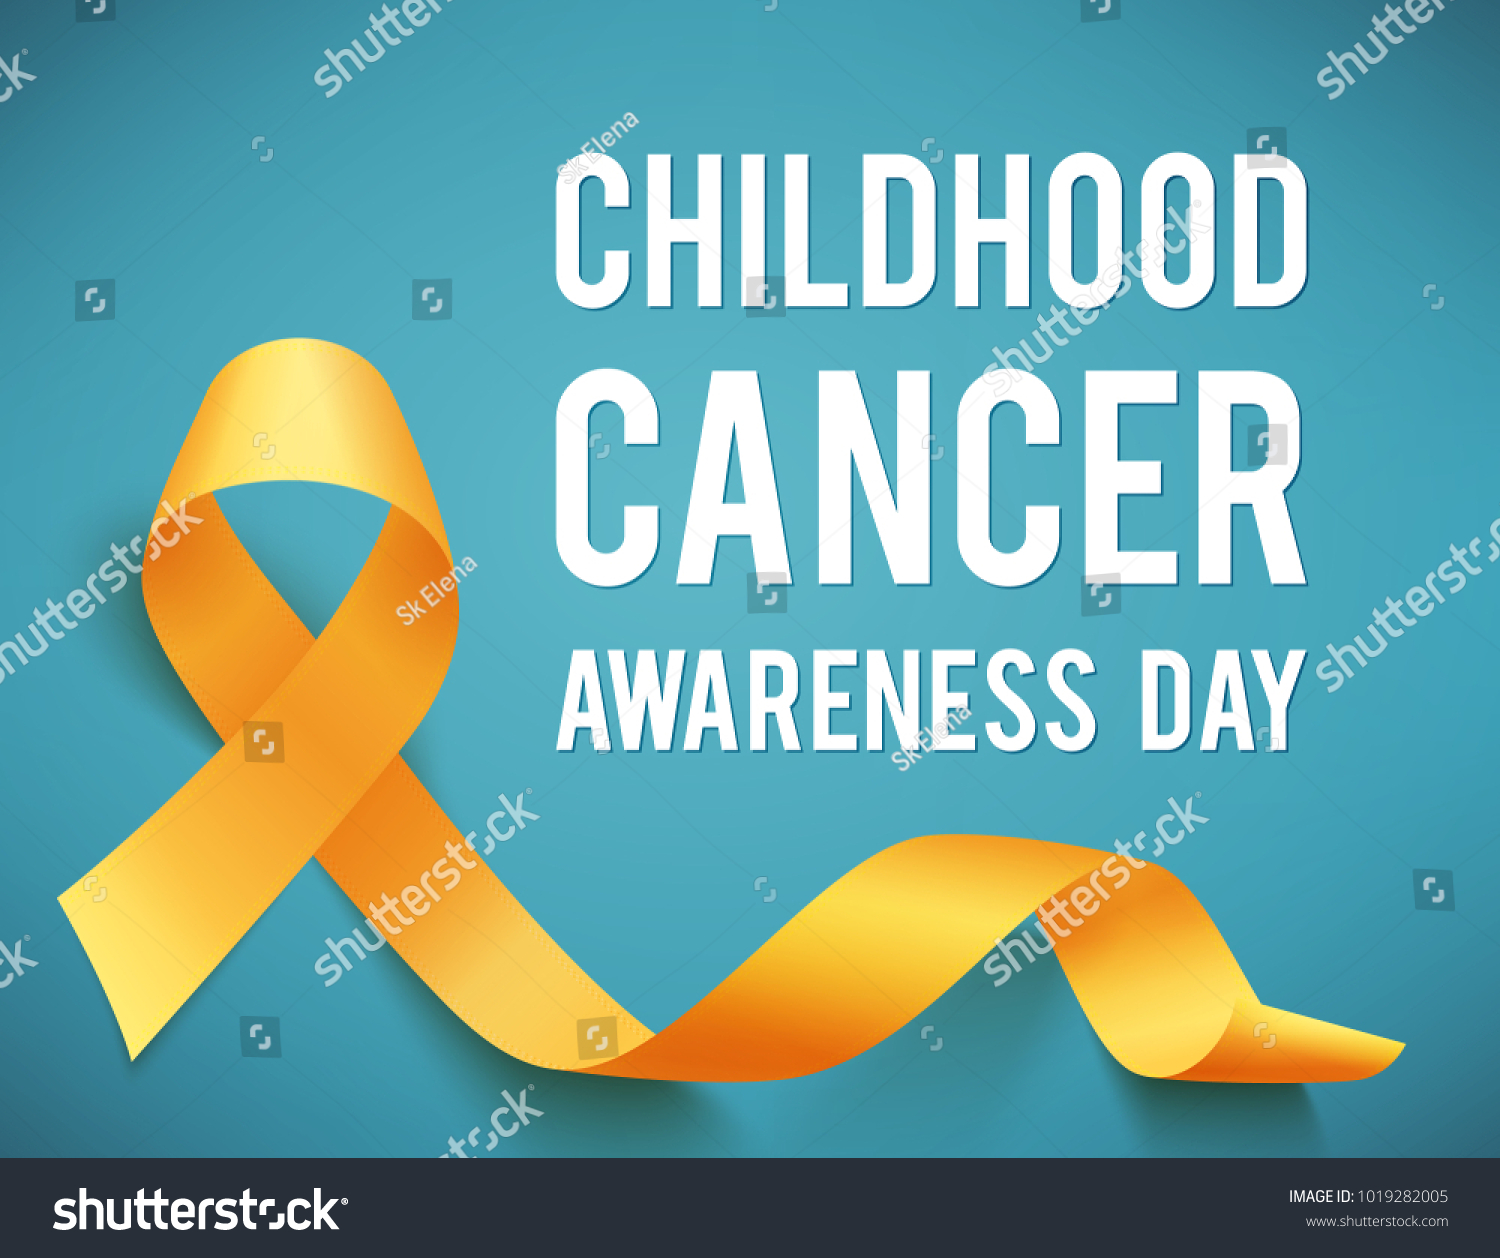 Poster childhood cancer awareness day symbol stock illustration poster for childhood cancer awareness day with symbol realistic yellow ribbon illustration buycottarizona Images